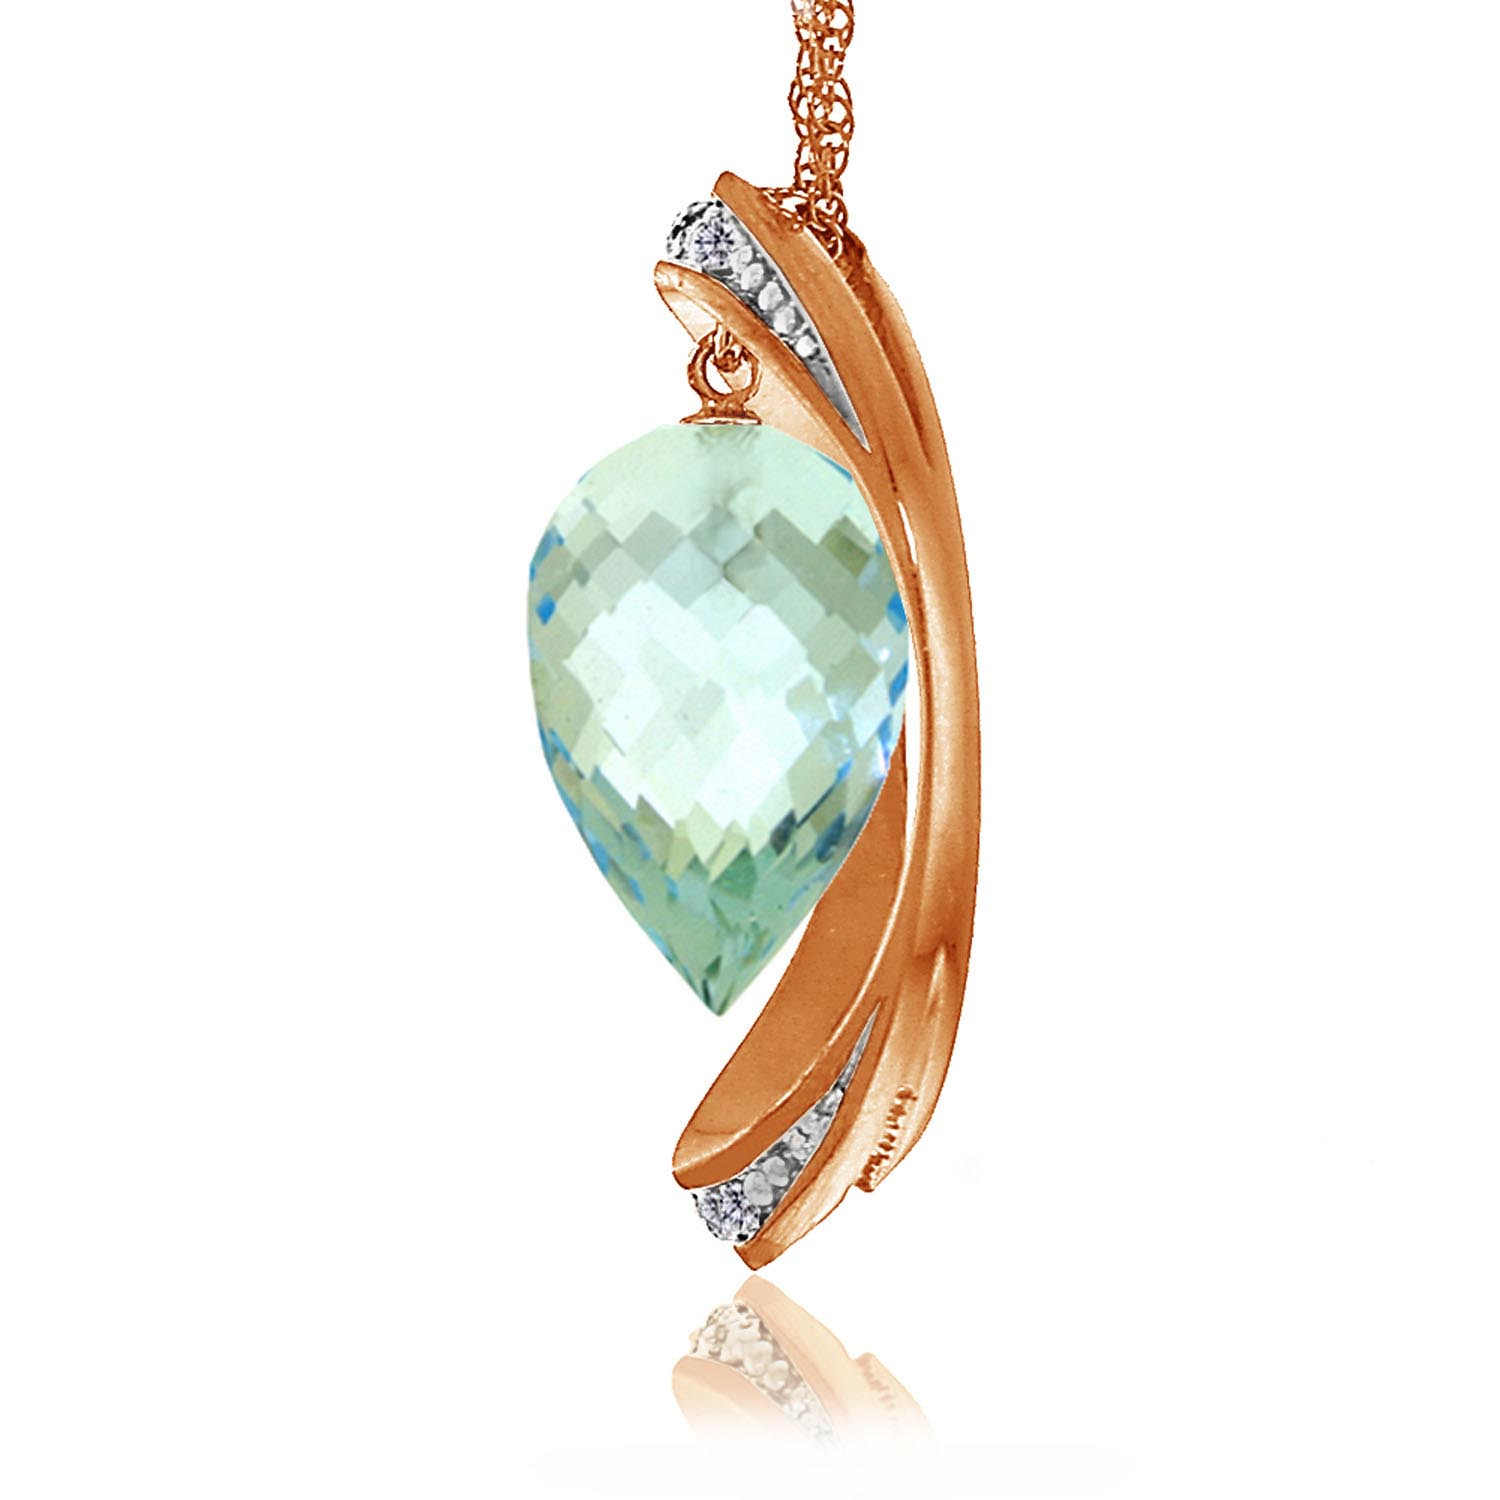 Blue Topaz and Diamond Pendant Necklace 11.5ct in 14K Rose Gold